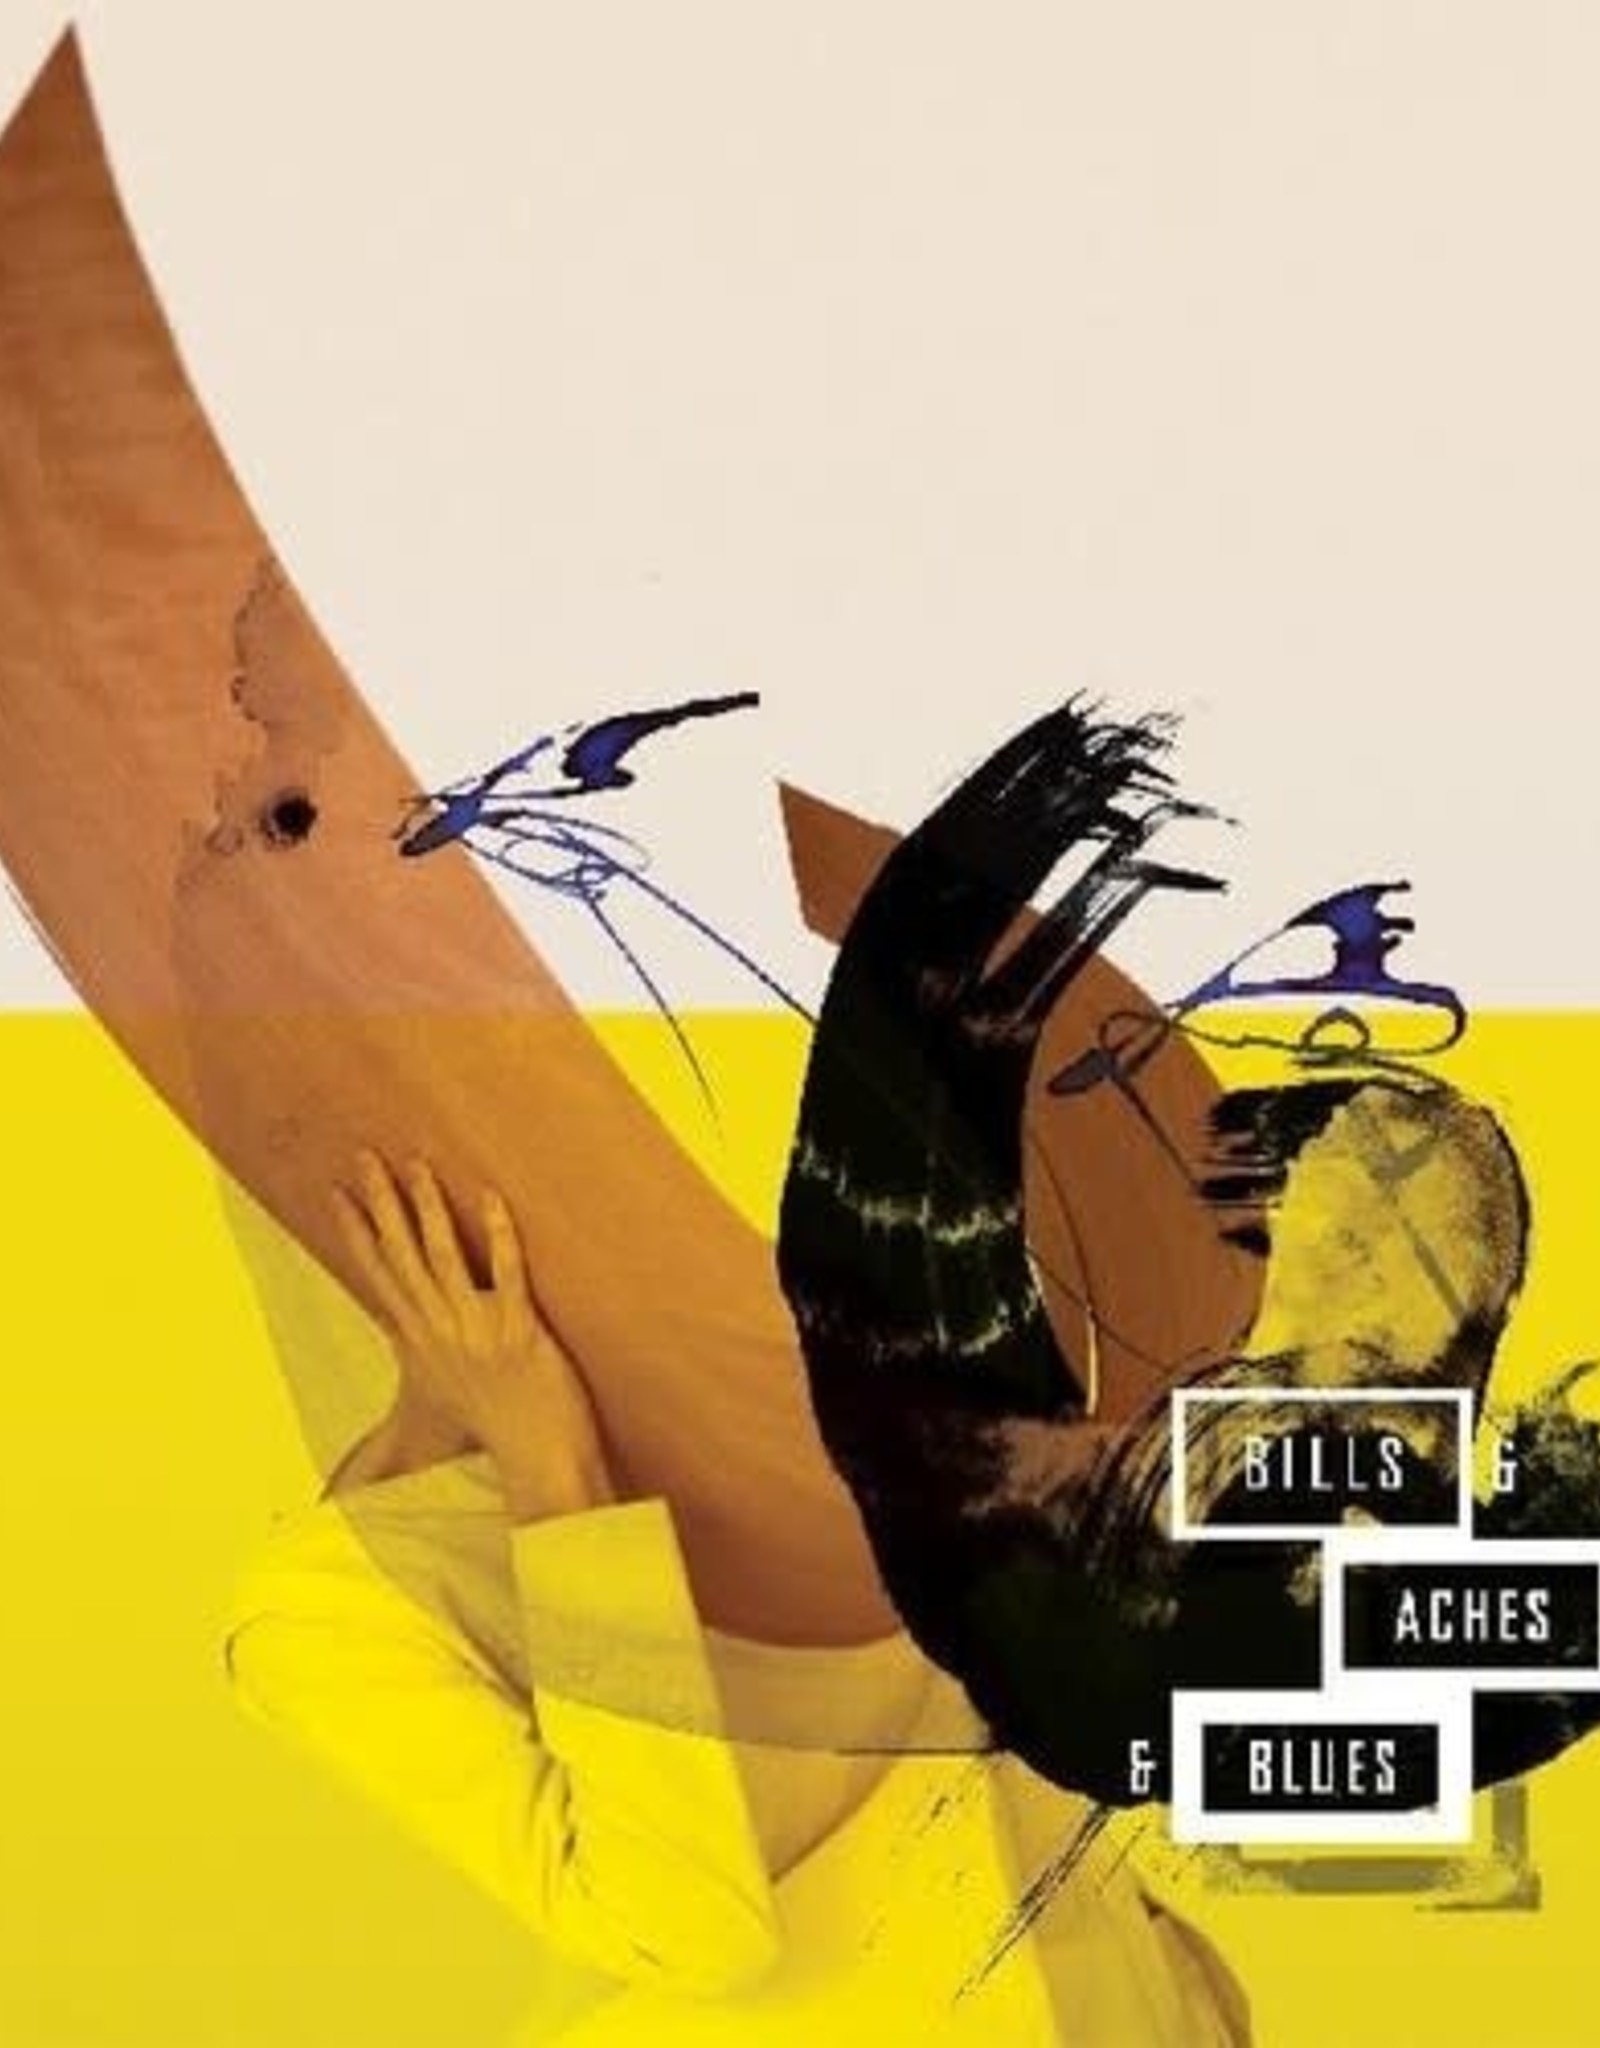 Bills & Aches & Blues (40 Years of 4AD)